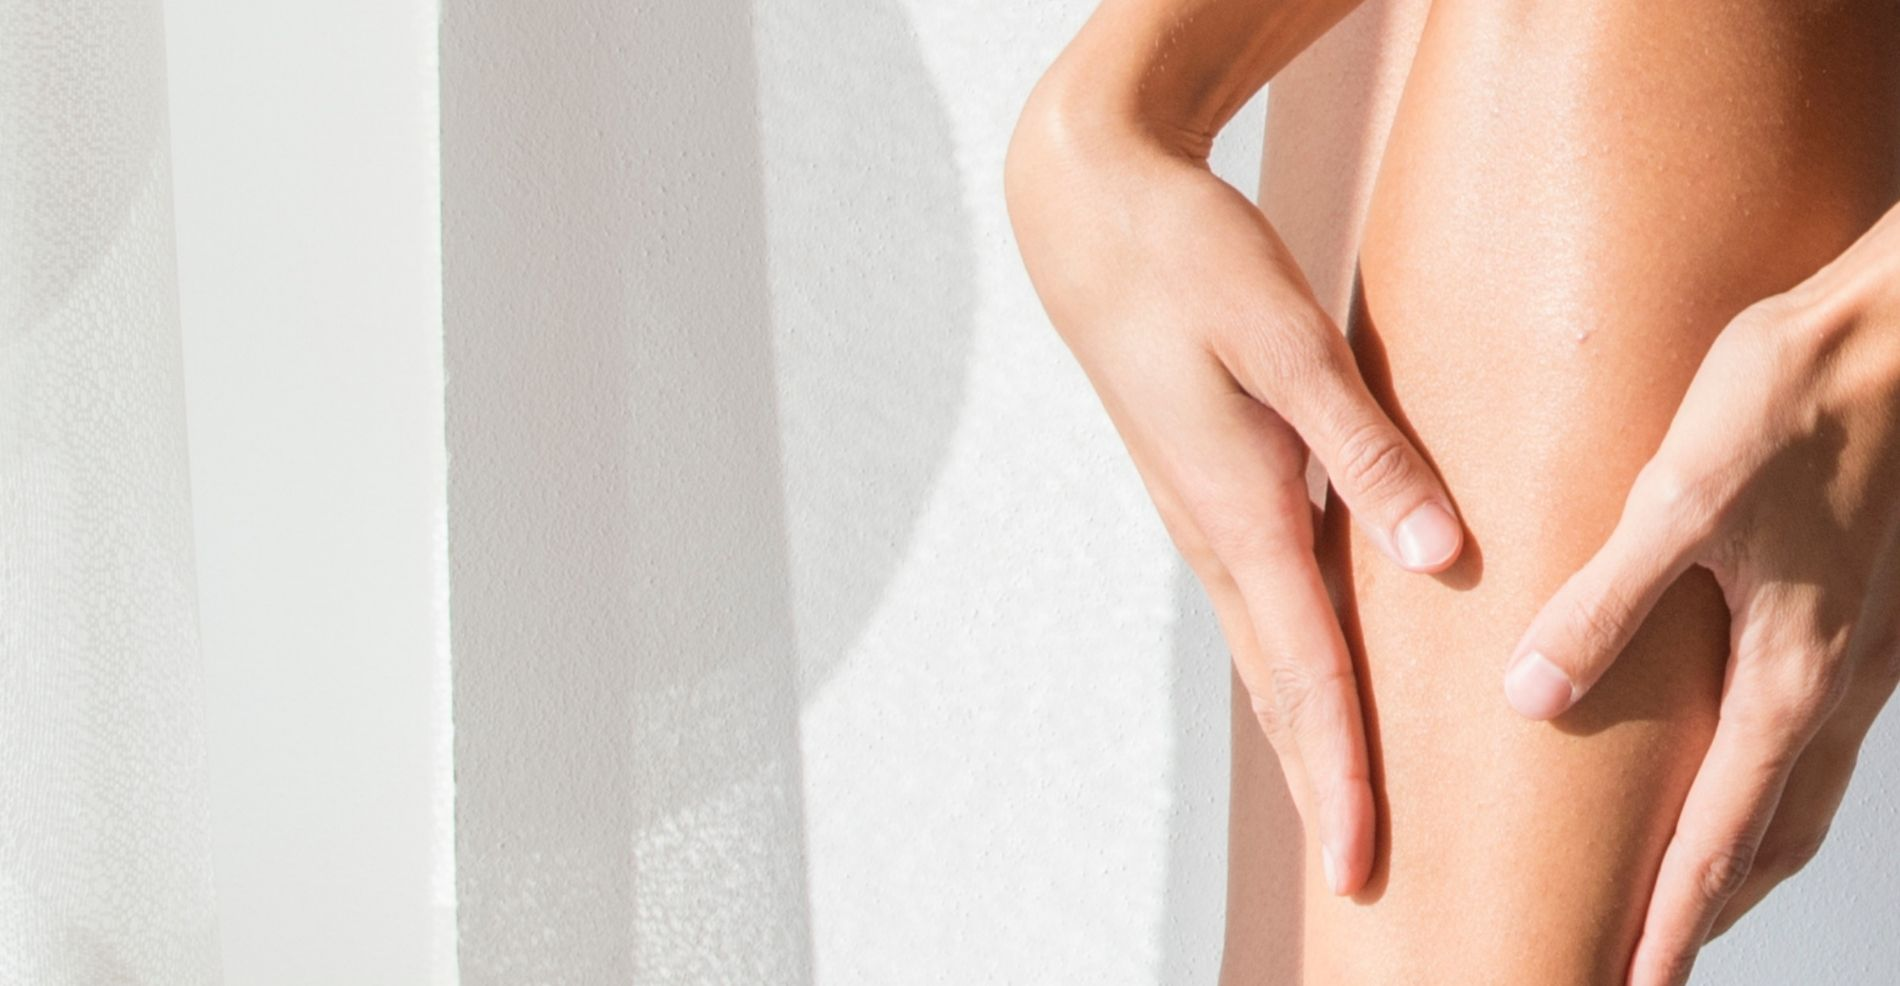 Best Popular Spas, Hair Salons, Facials, Massages, Grooming, Aesthetic Treatments in Singapore 2021 Best Hair Removal Services